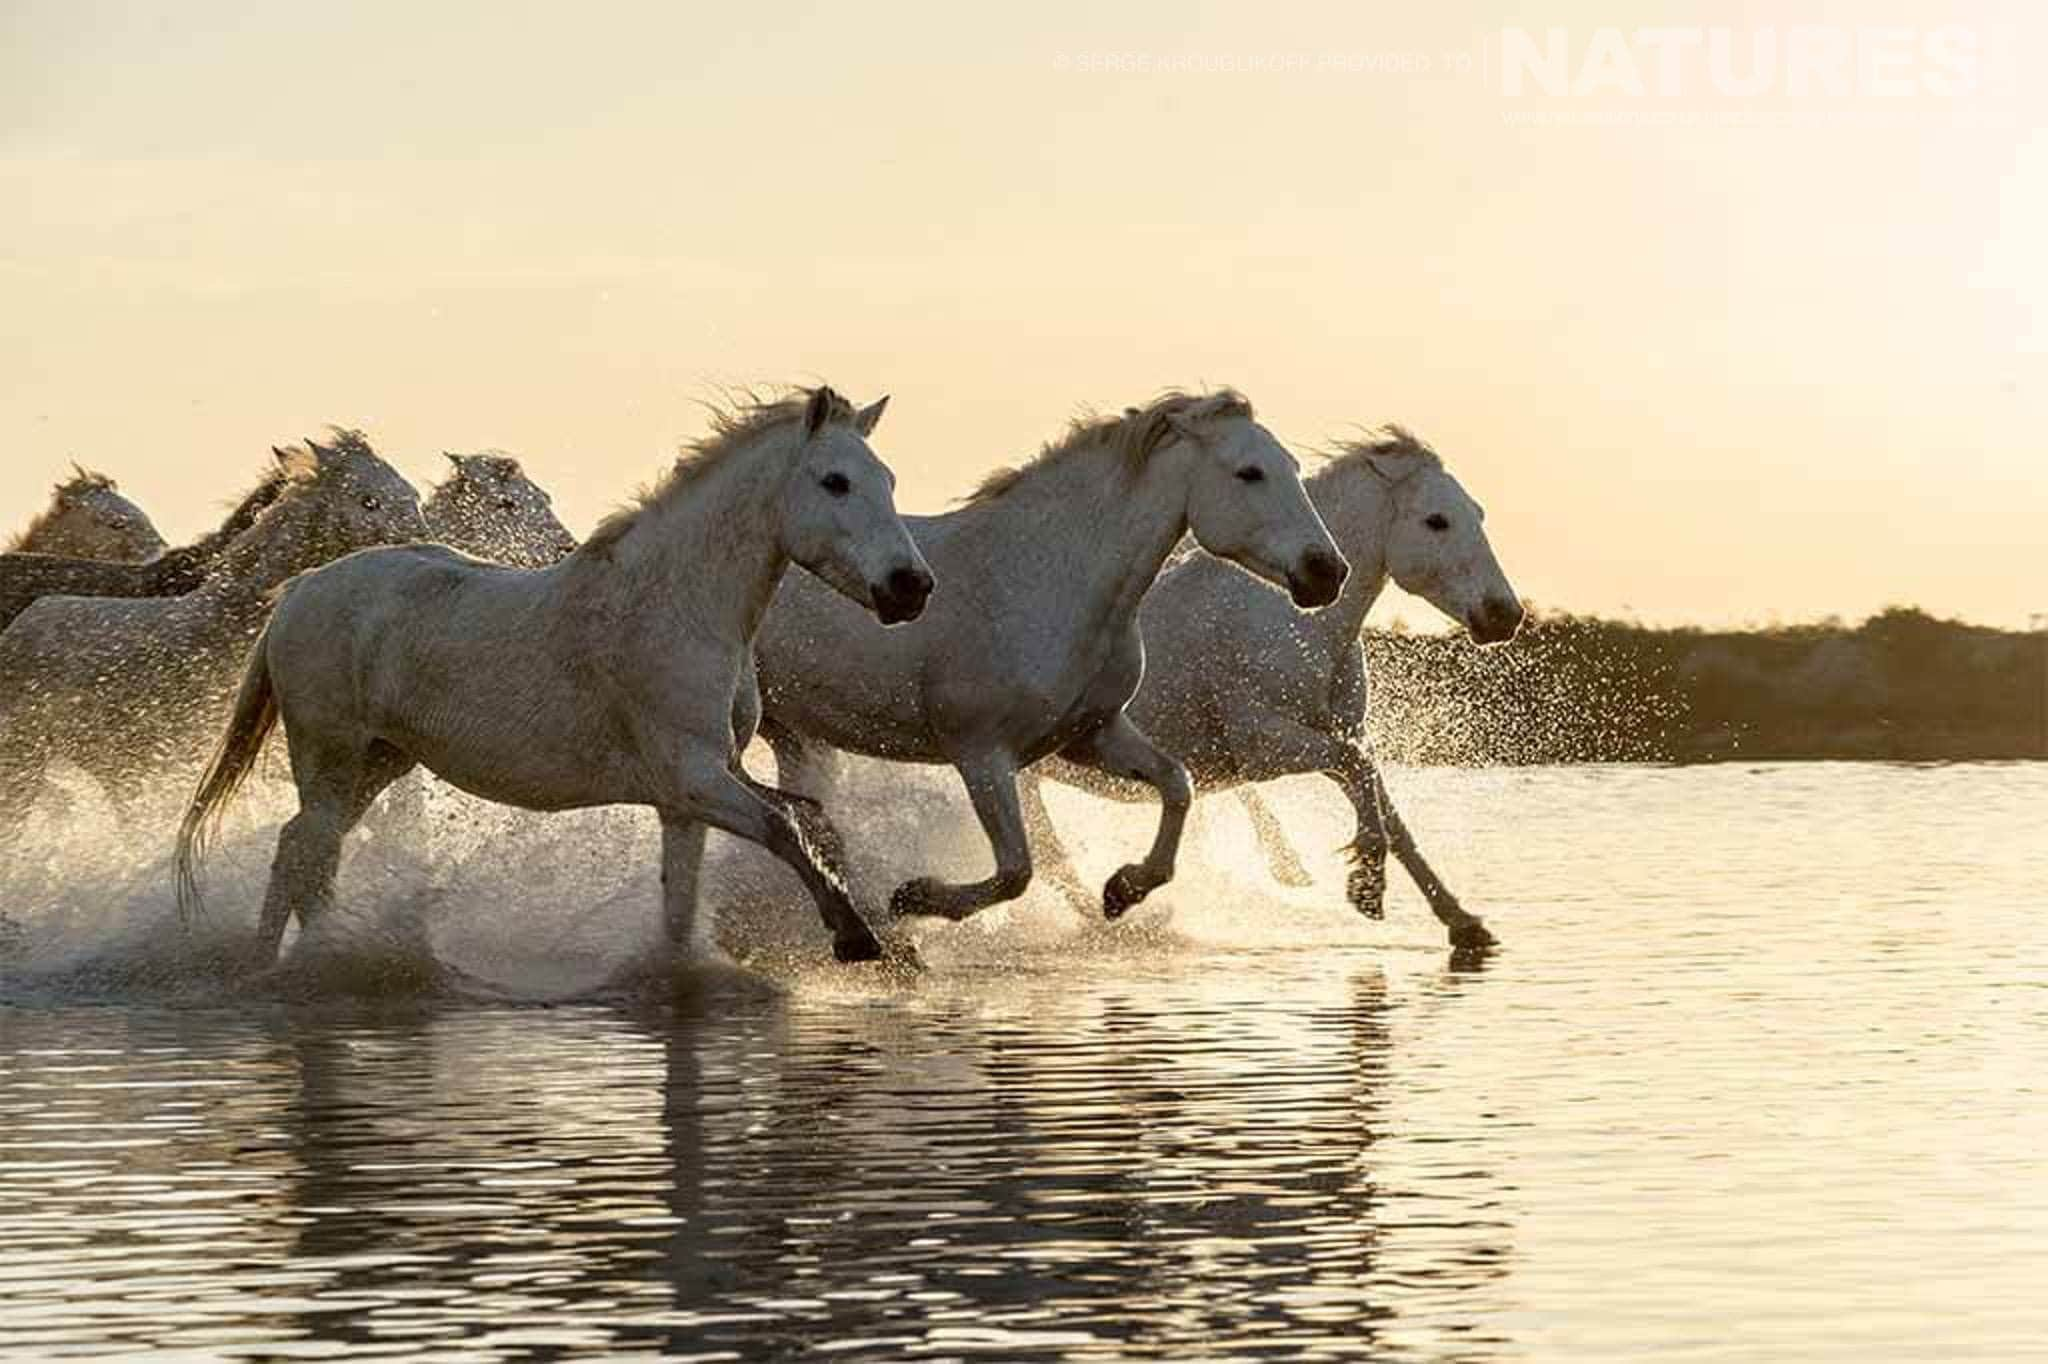 A herd of white horses dash through shallow waters as the sun sets typical of the type of image that may be captured during the NaturesLens Wild White Horses of the Camargue Photography Holiday